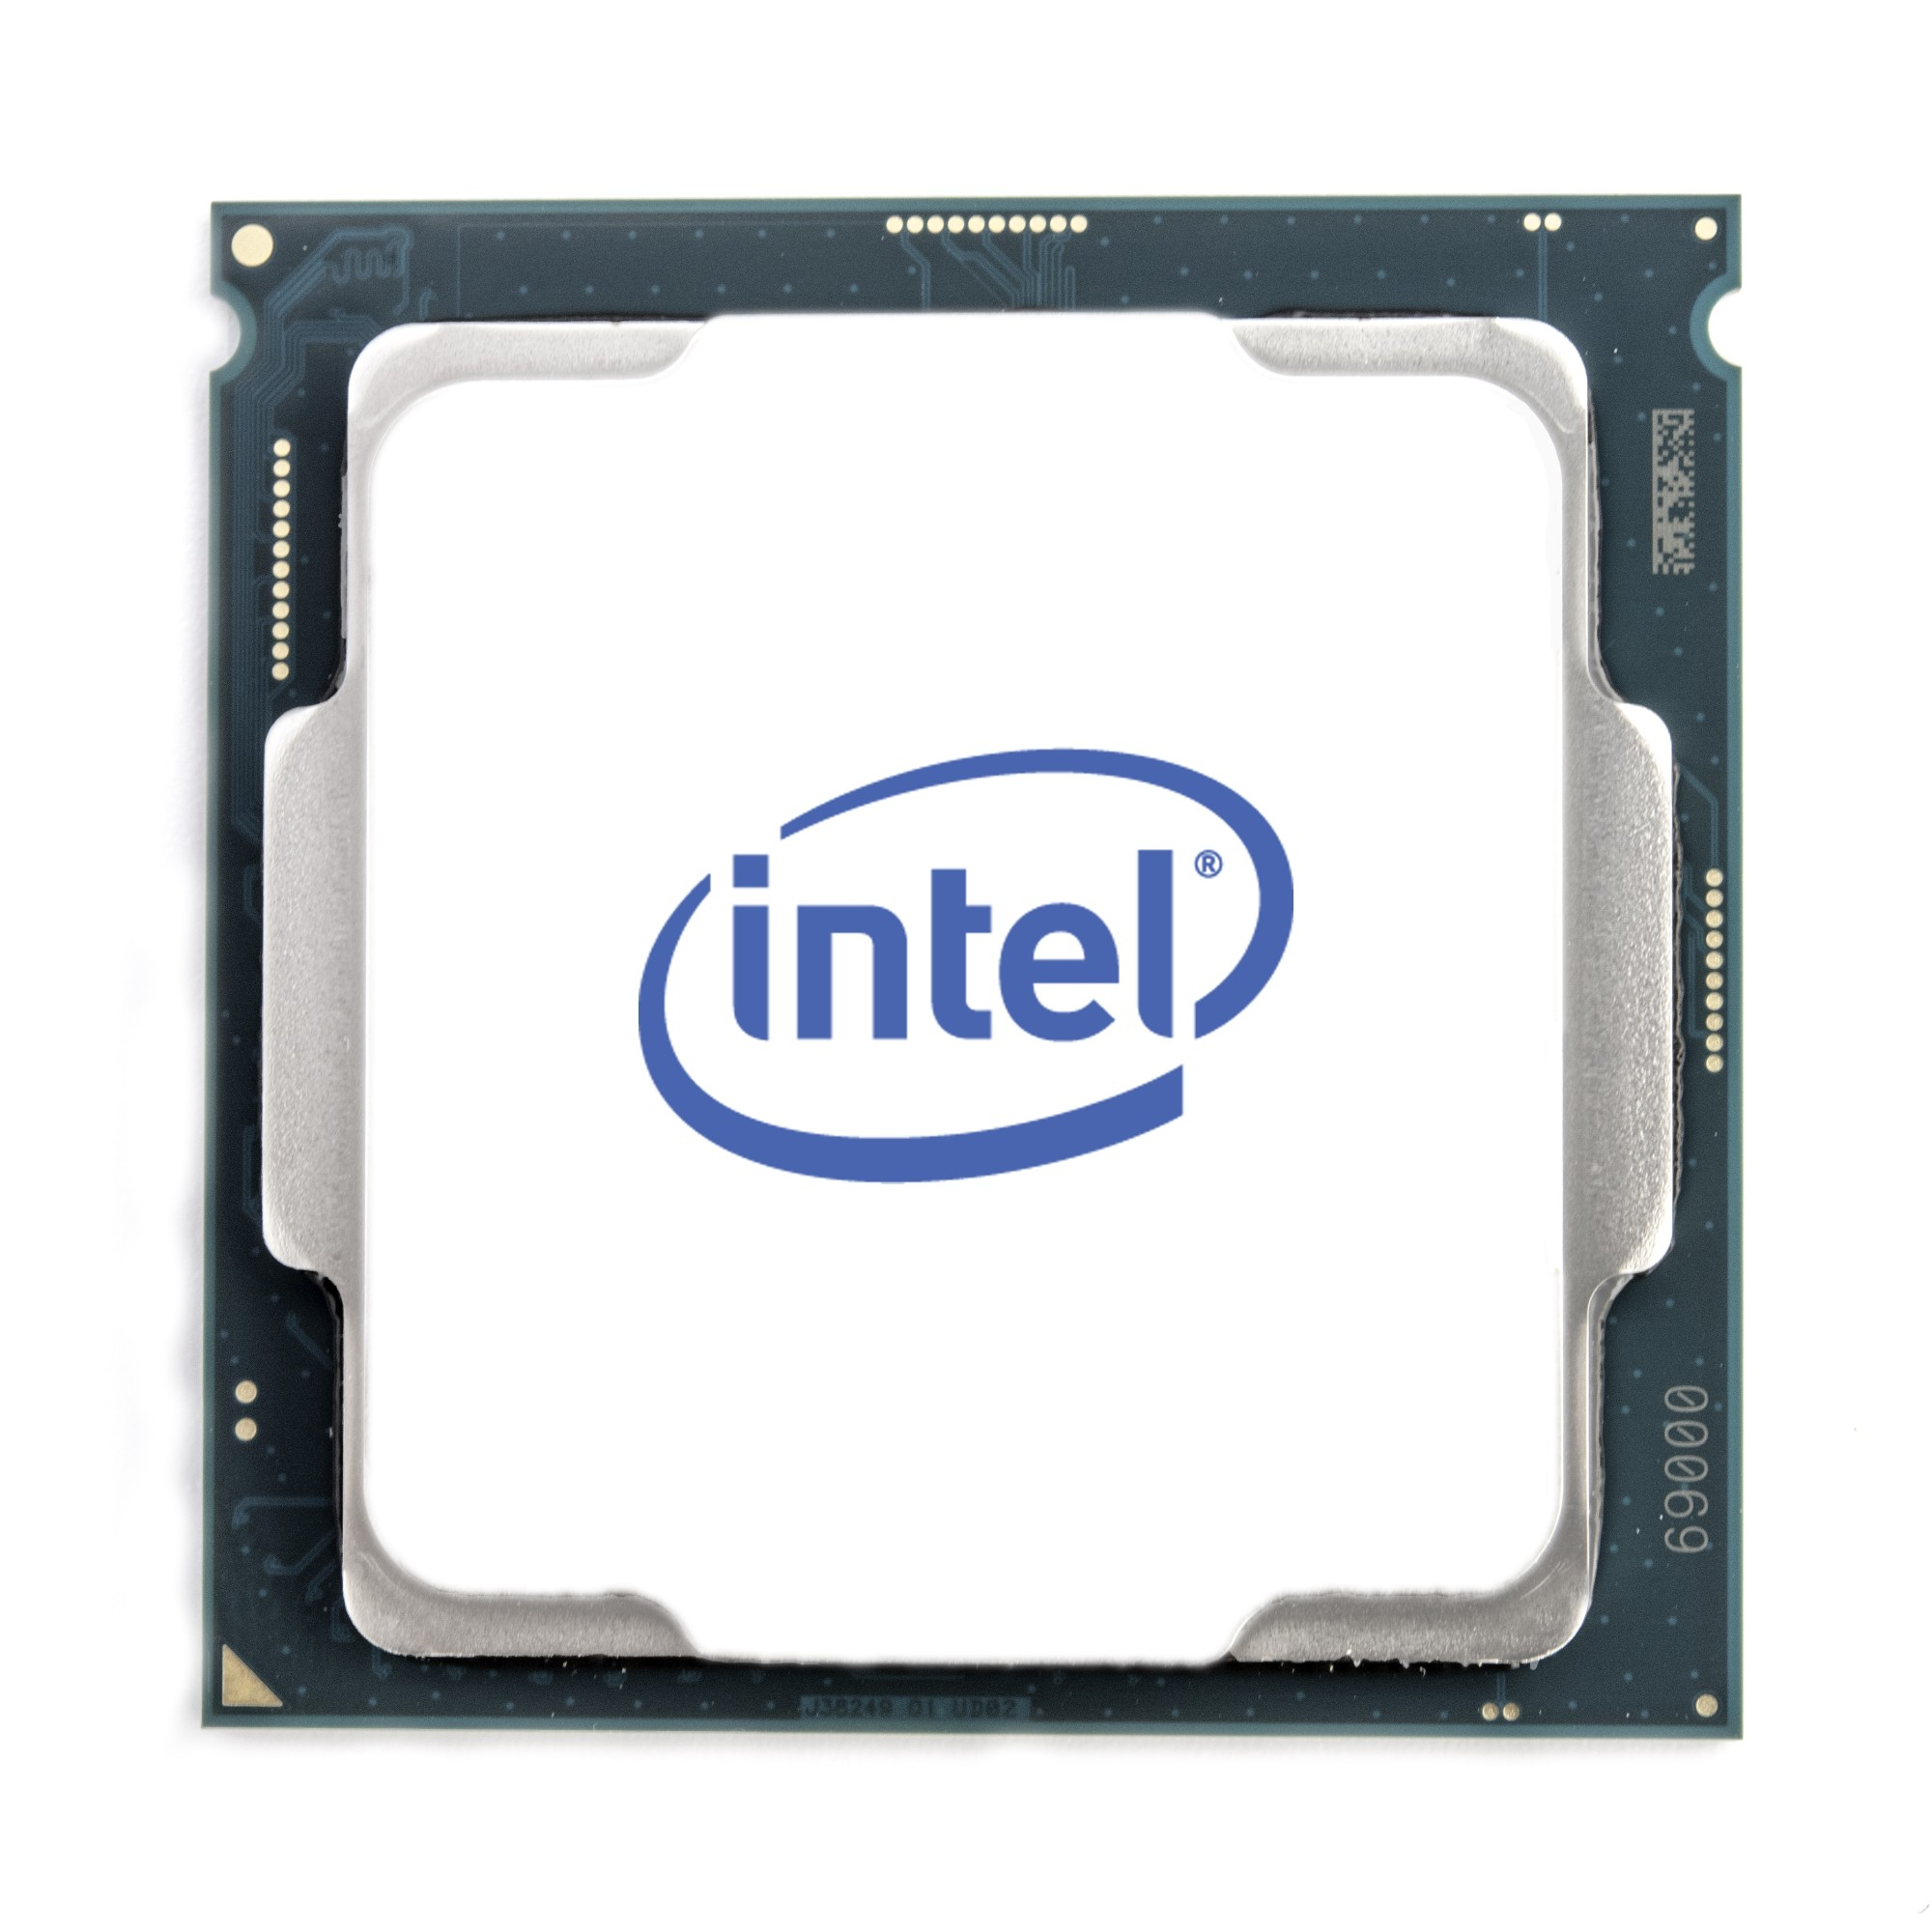 Intel Xeon W-2225 processor 4.1 GHz 8.25 MB